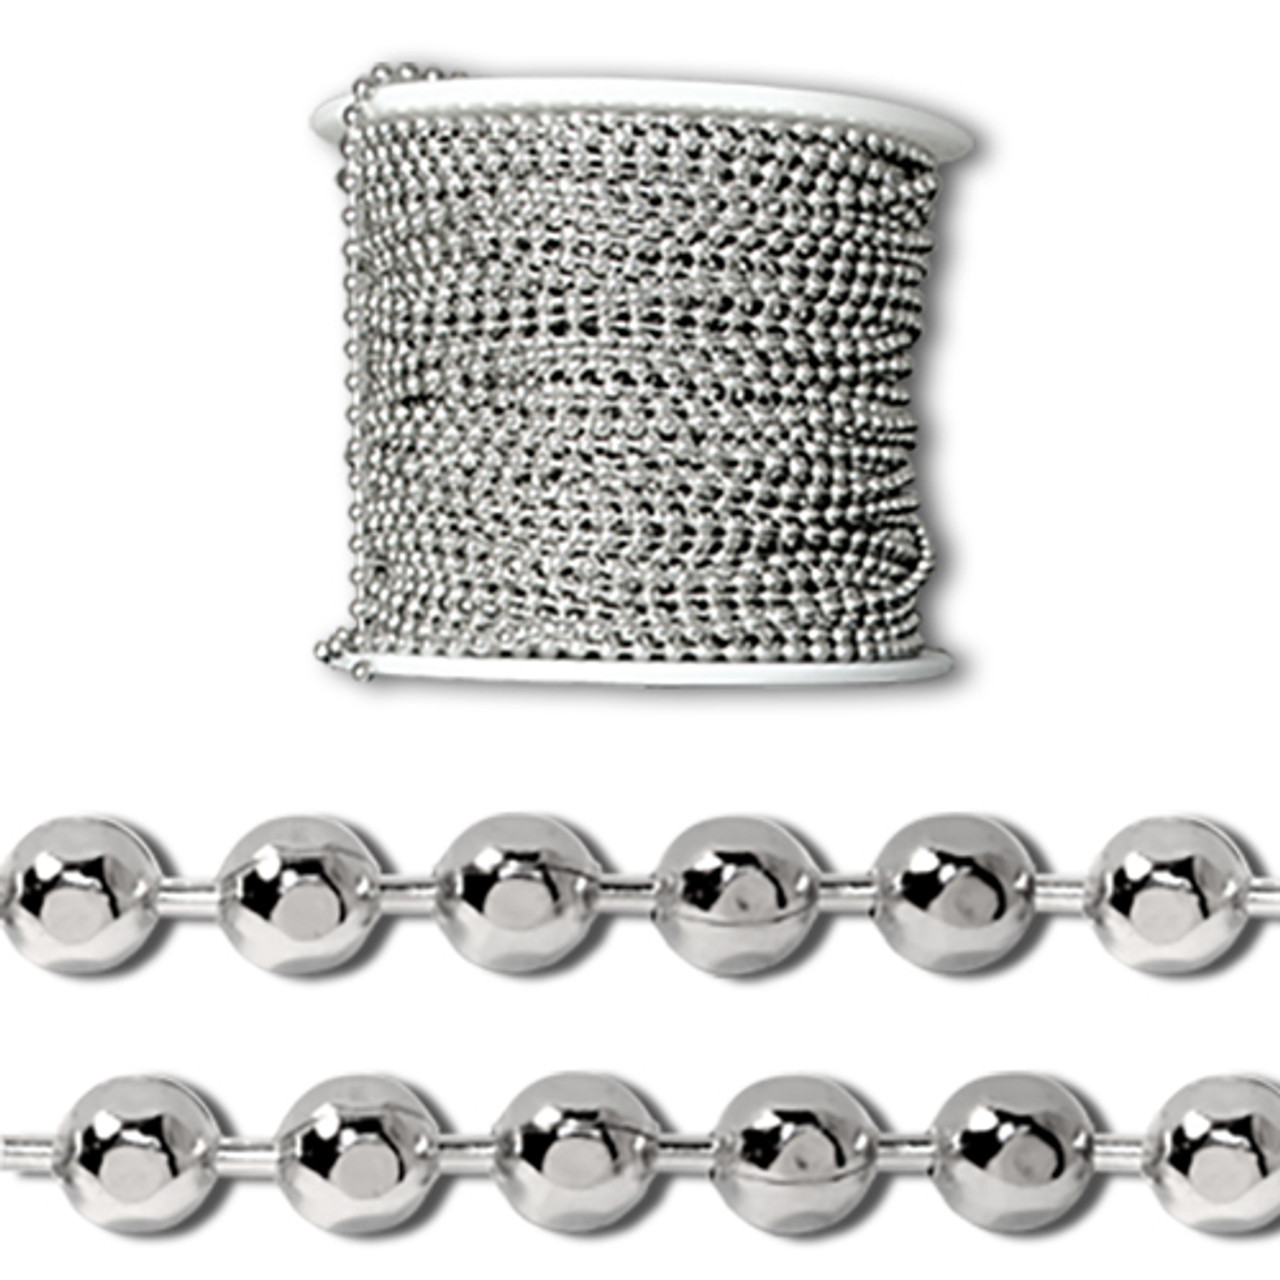 3.2 mm diameter sterling silver faceted ball chain spool that comes in ultiple lengths.